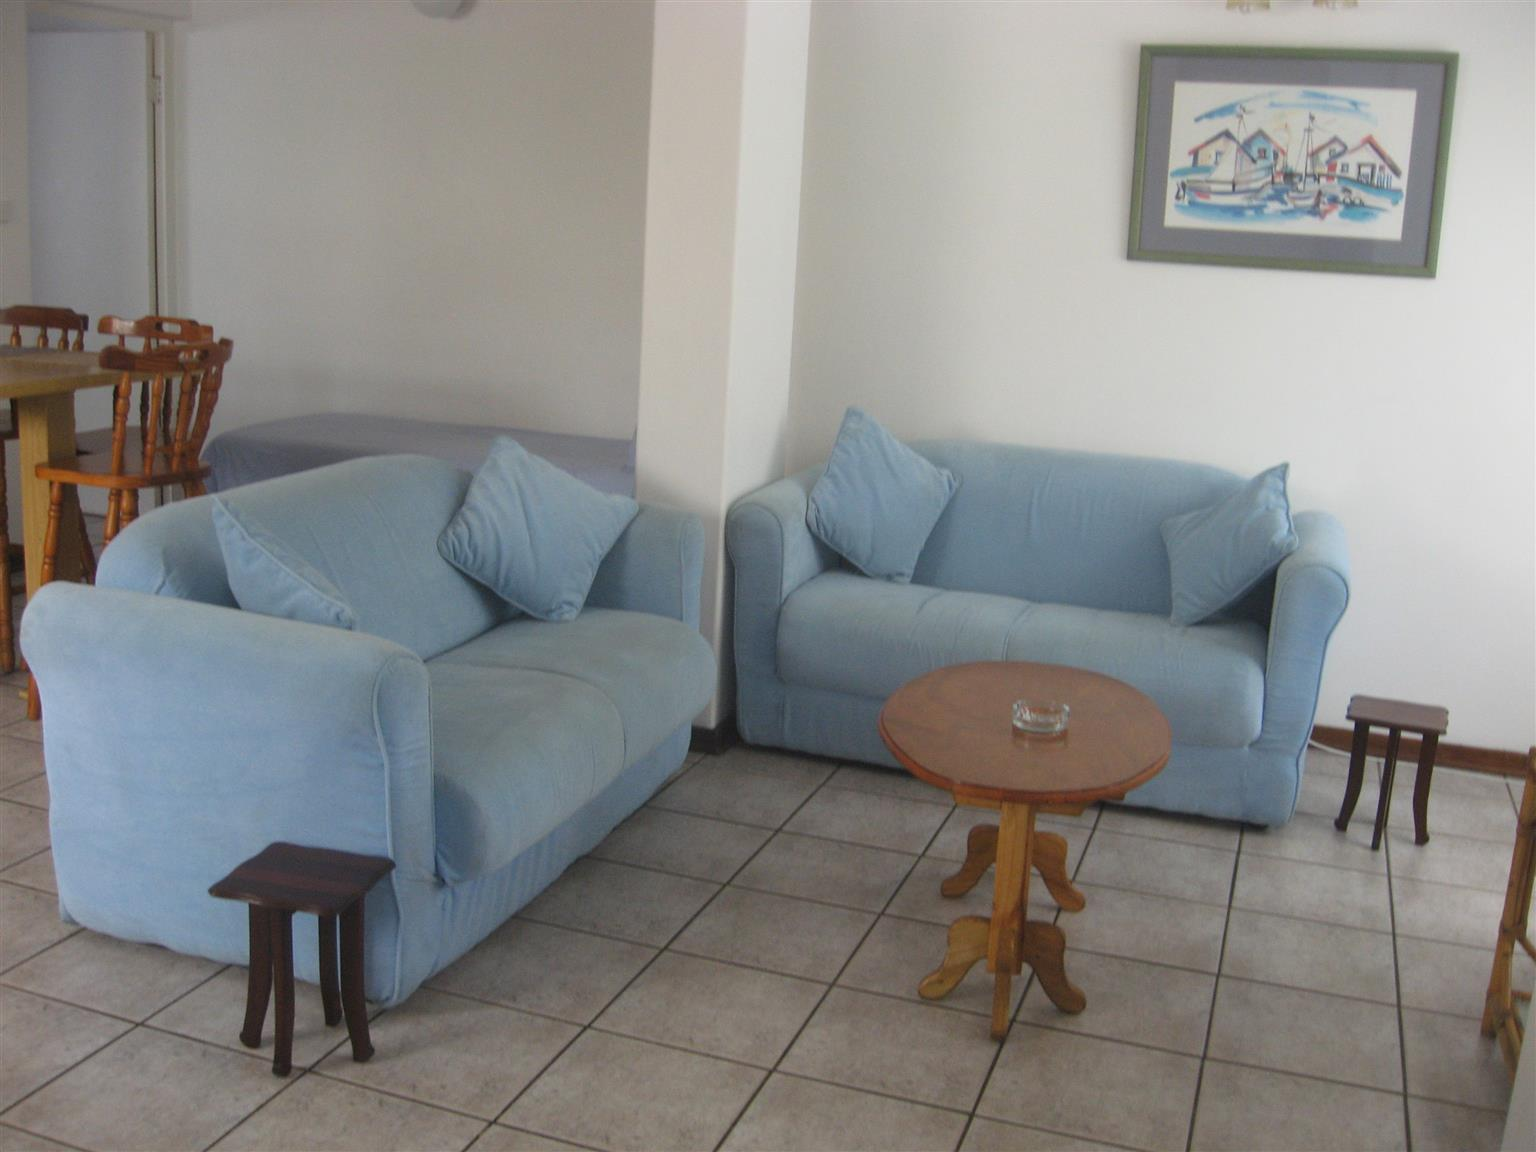 BLOCK OF 5 FLATS FOR SALE - INVESTMENT PROPERTY AN EXCELLENT RETURN ON INVESTMENT R2,550,000 UVONGO